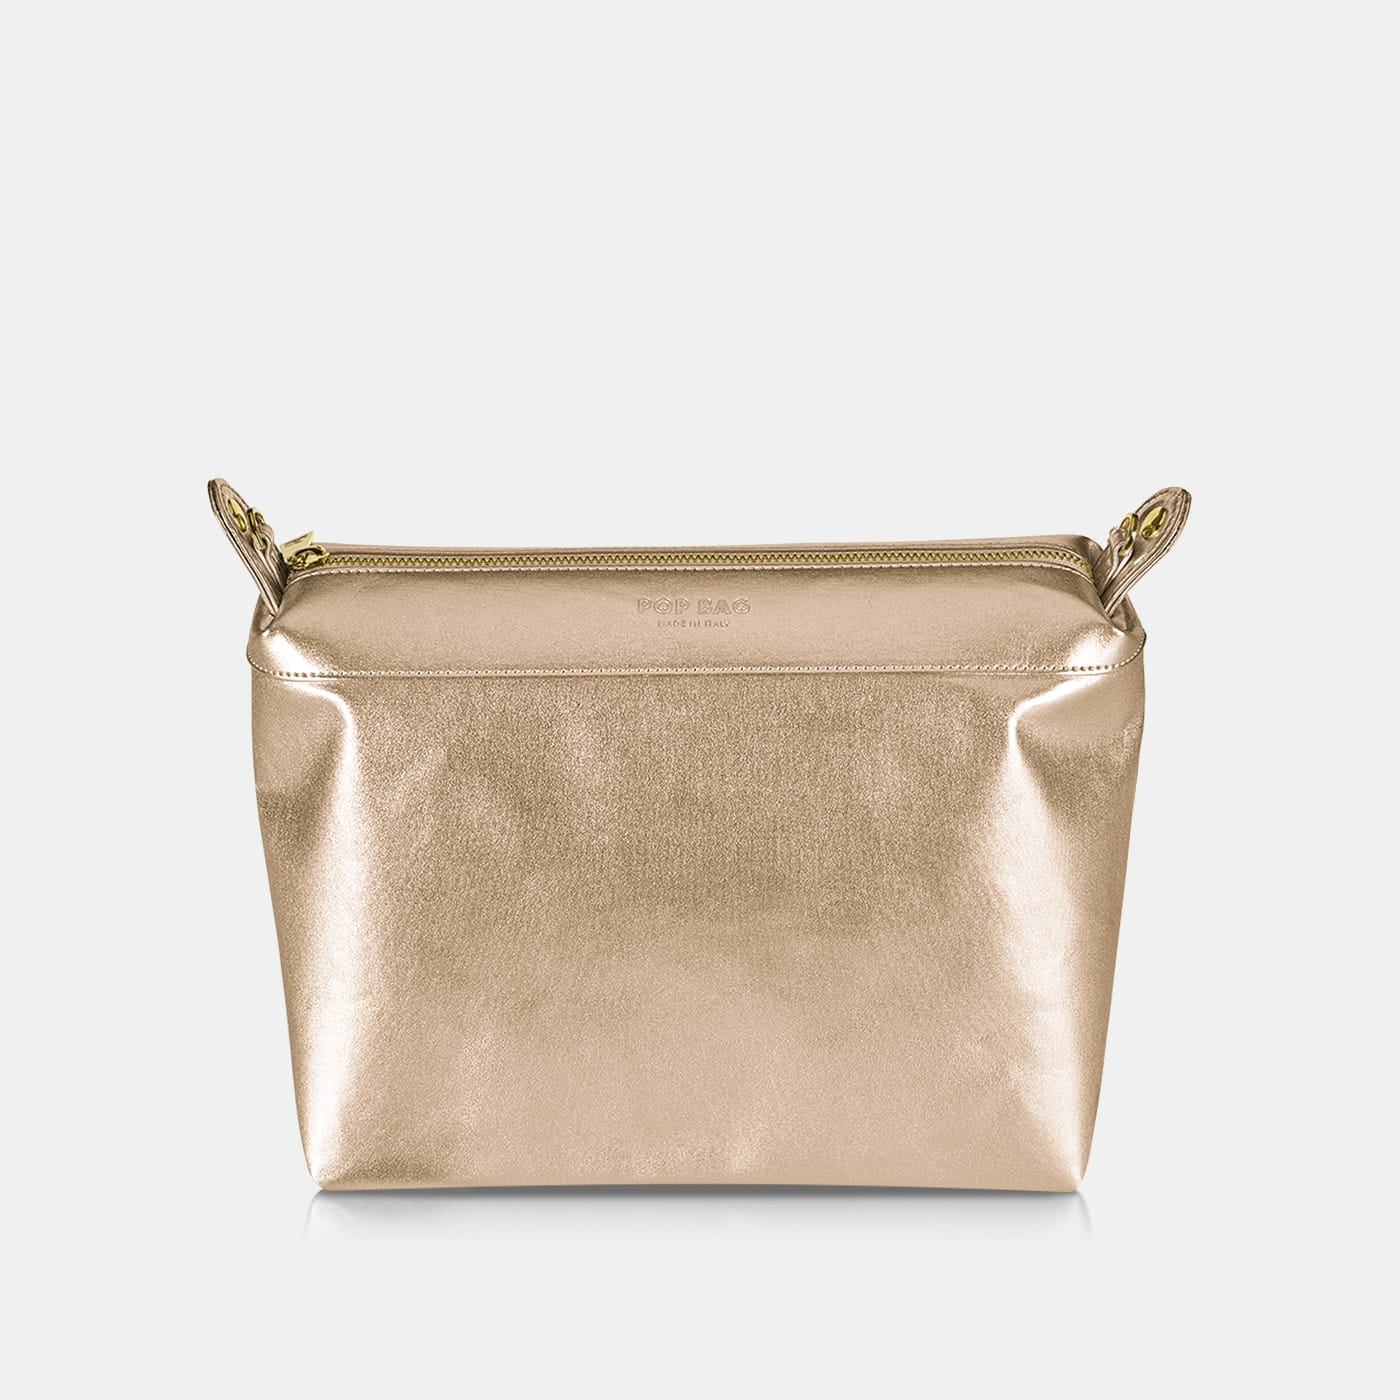 Bag In Bag - Metallic - Powder Metal - Large